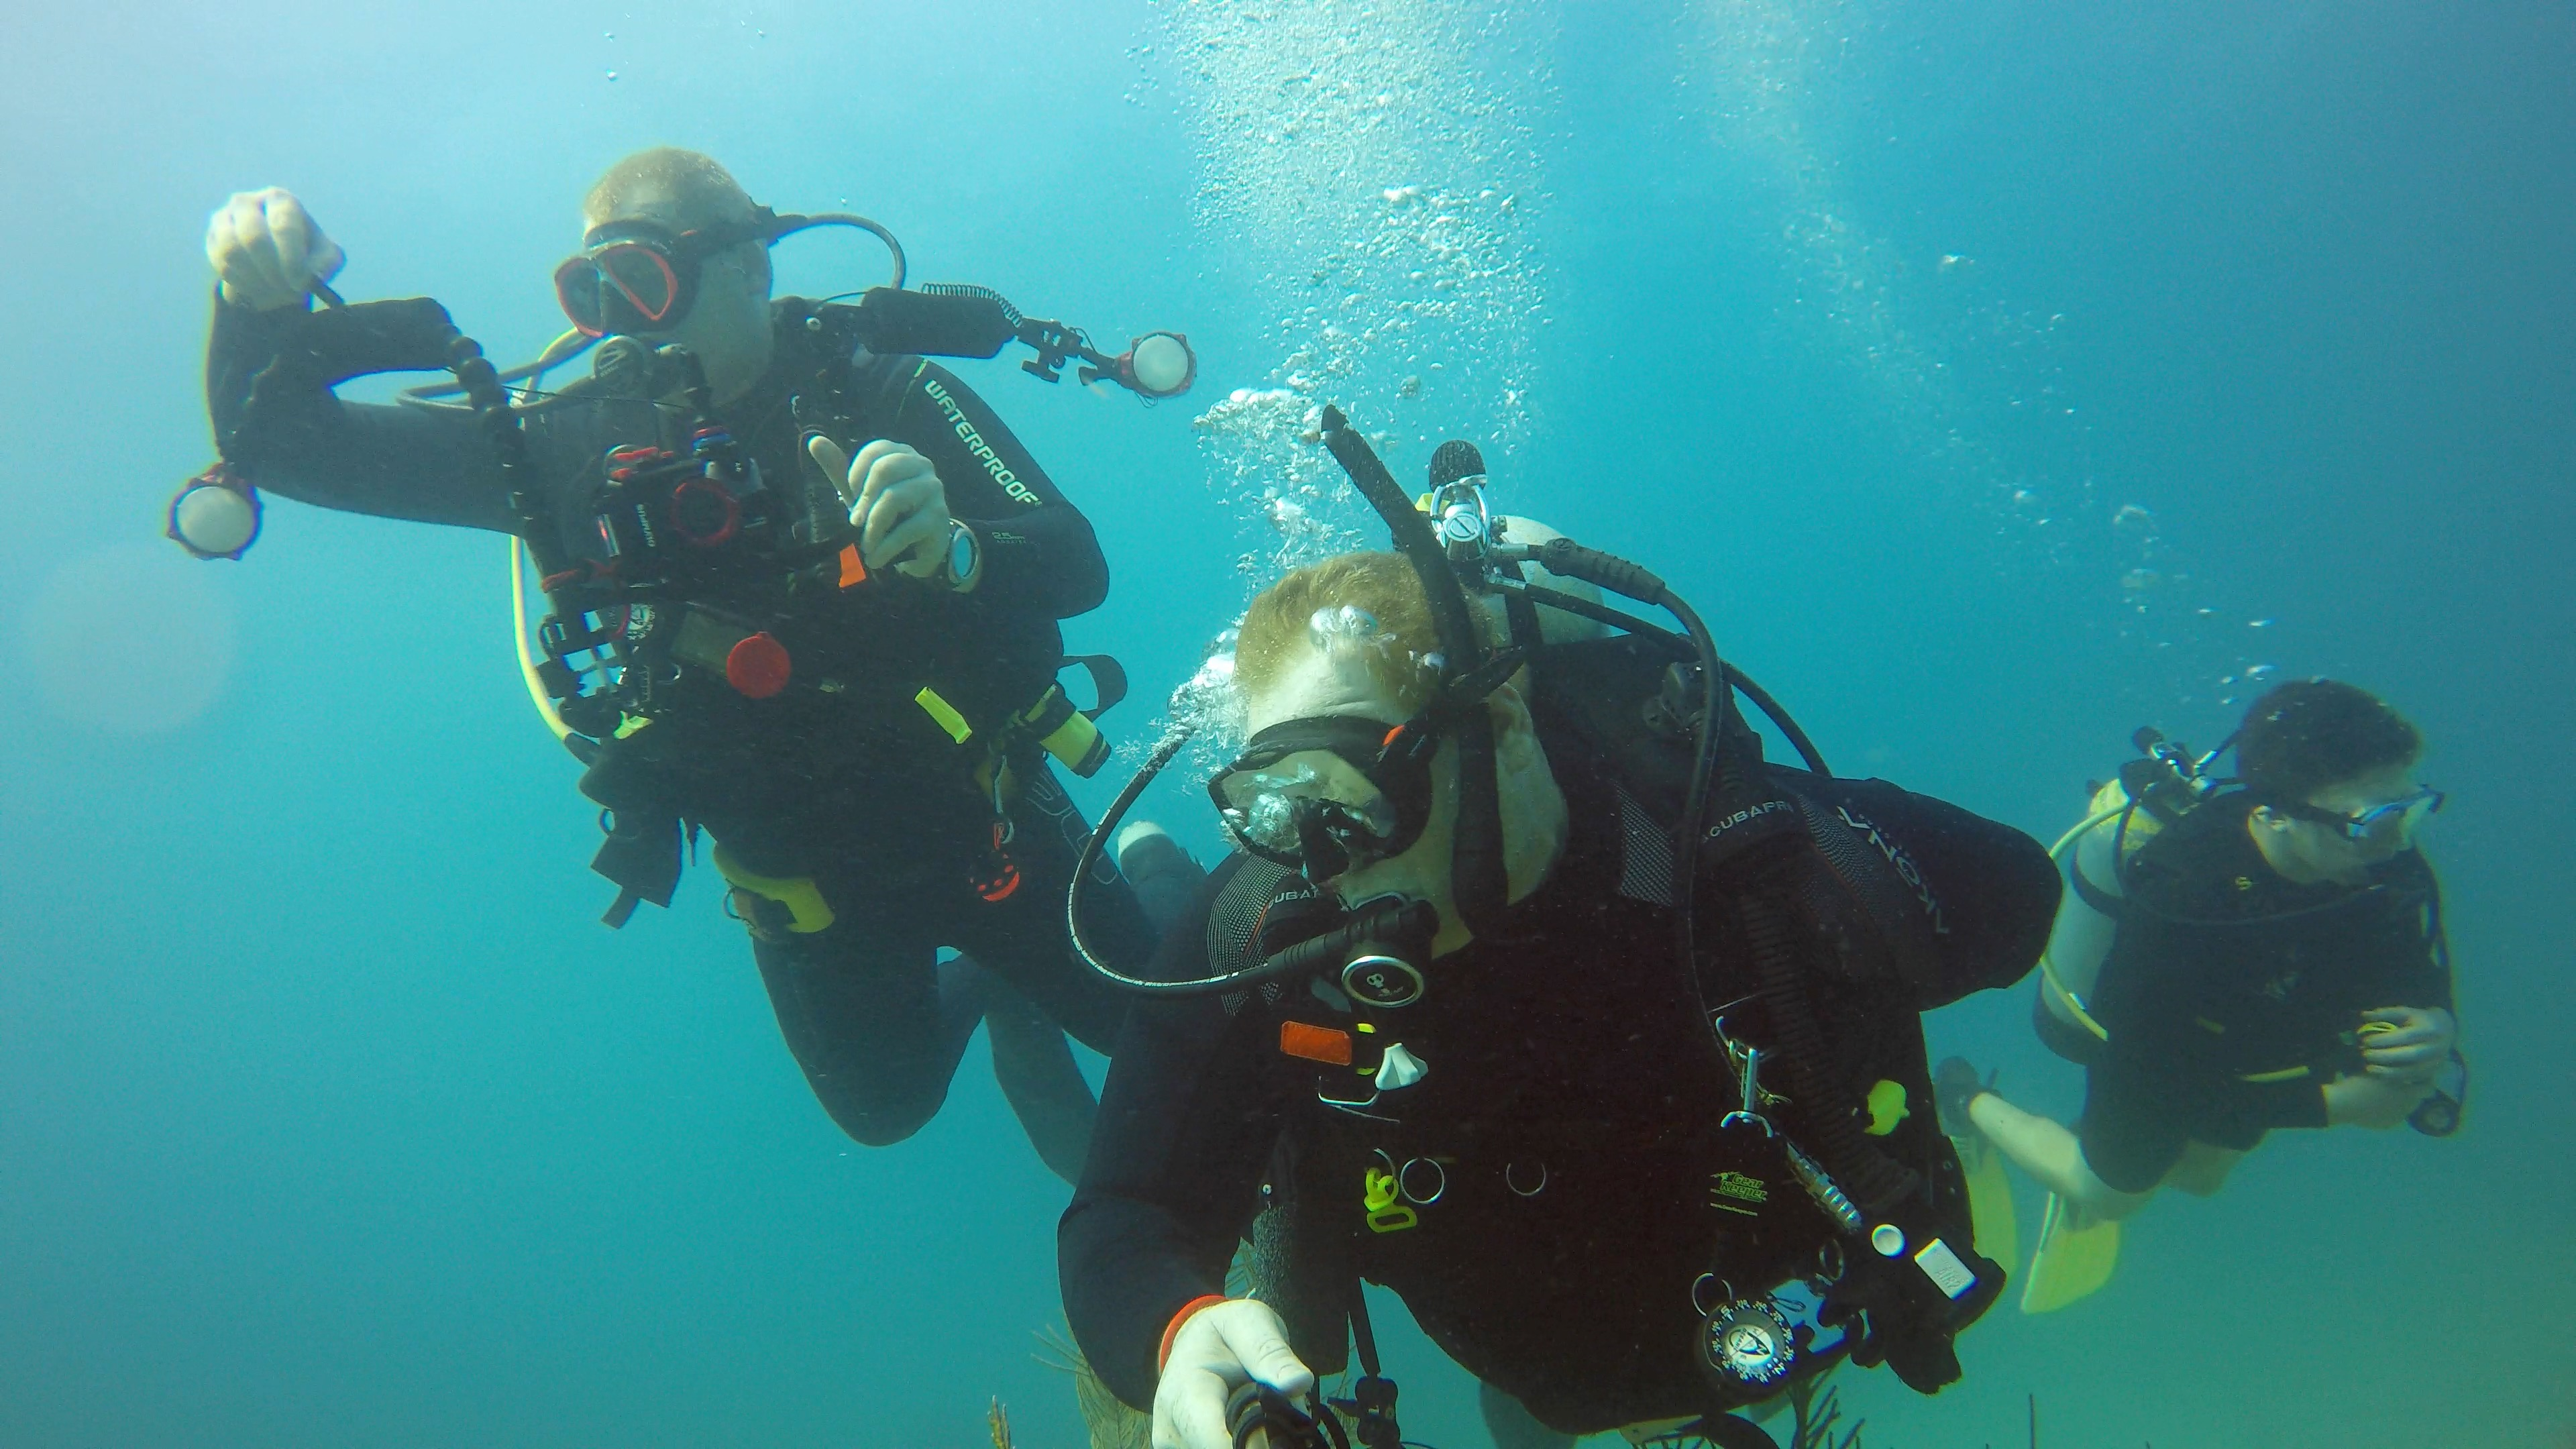 Diving with Amine and Ryan